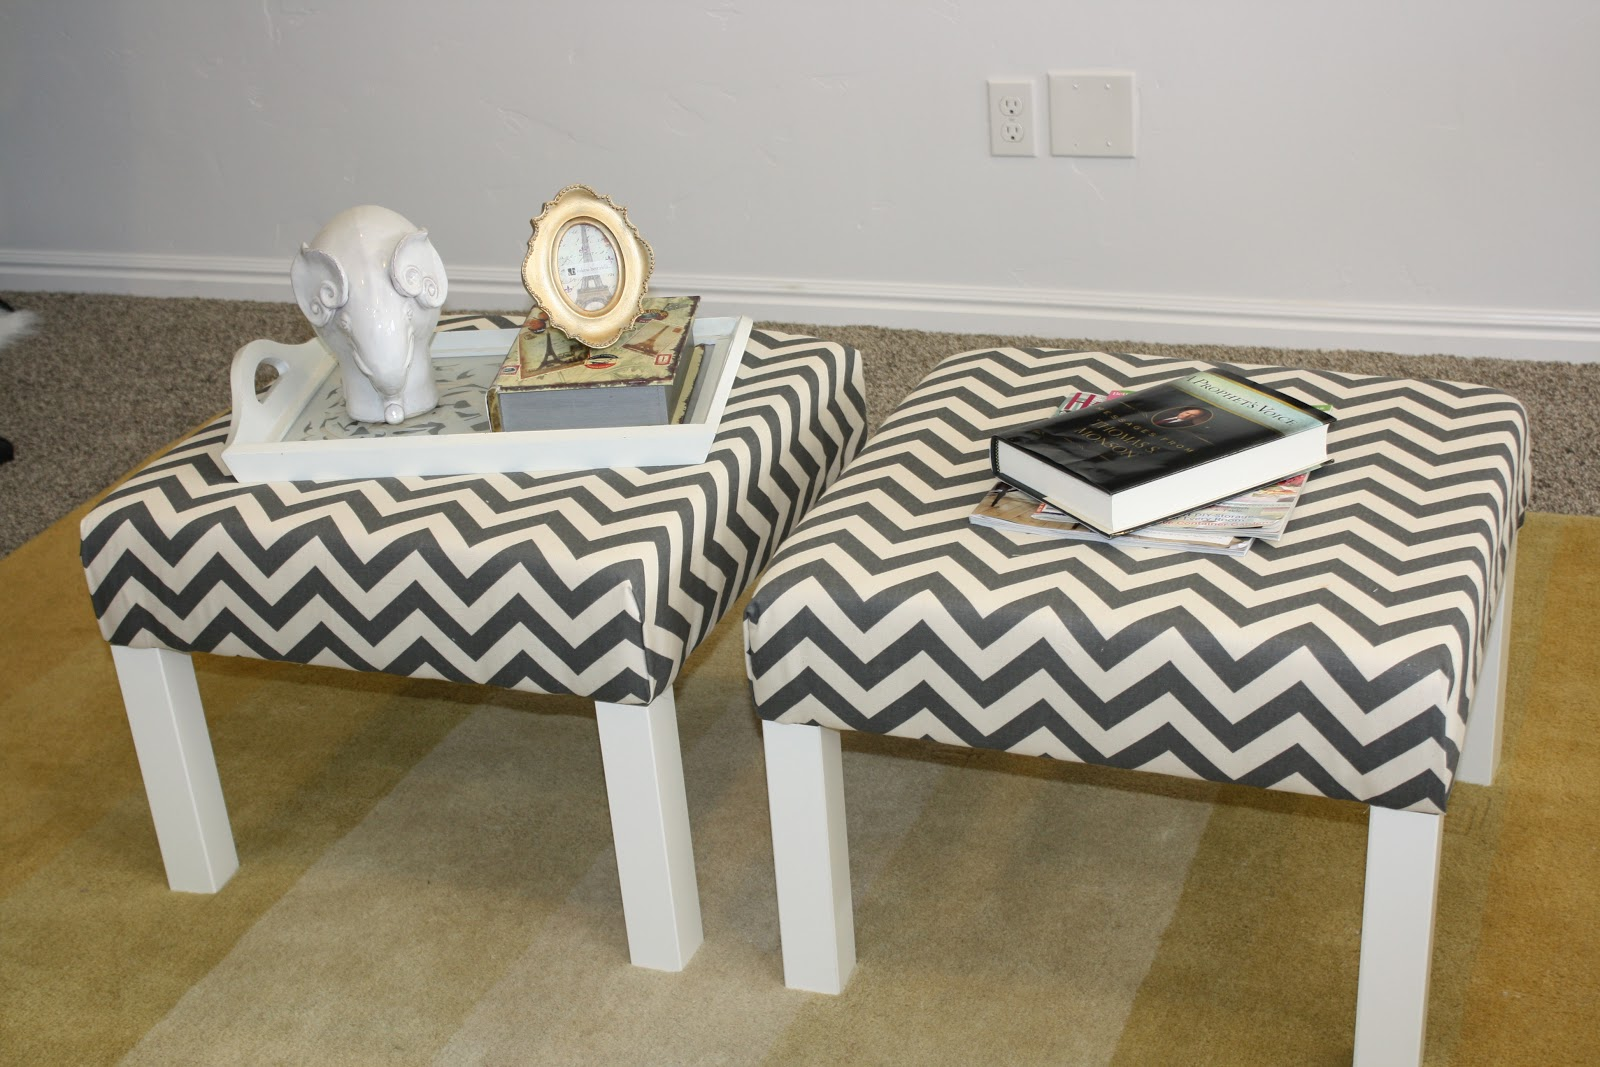 melissa rey styles diy ottomans from ikea lack 39 s. Black Bedroom Furniture Sets. Home Design Ideas